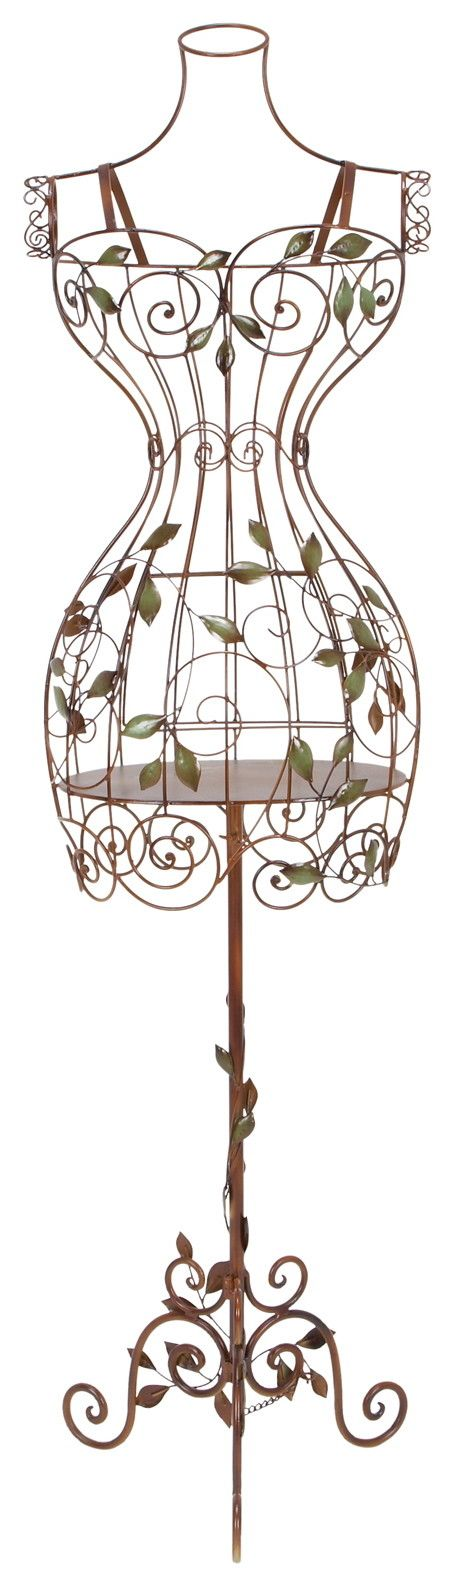 Features:  -Adds elegance with iron scroll designs.  -Color: Reddish-brown.  -Does stand on its own.  Product Type: -Sculpture.  Style (Old): -Traditional/French.  Subject: -Home decor and furniture.